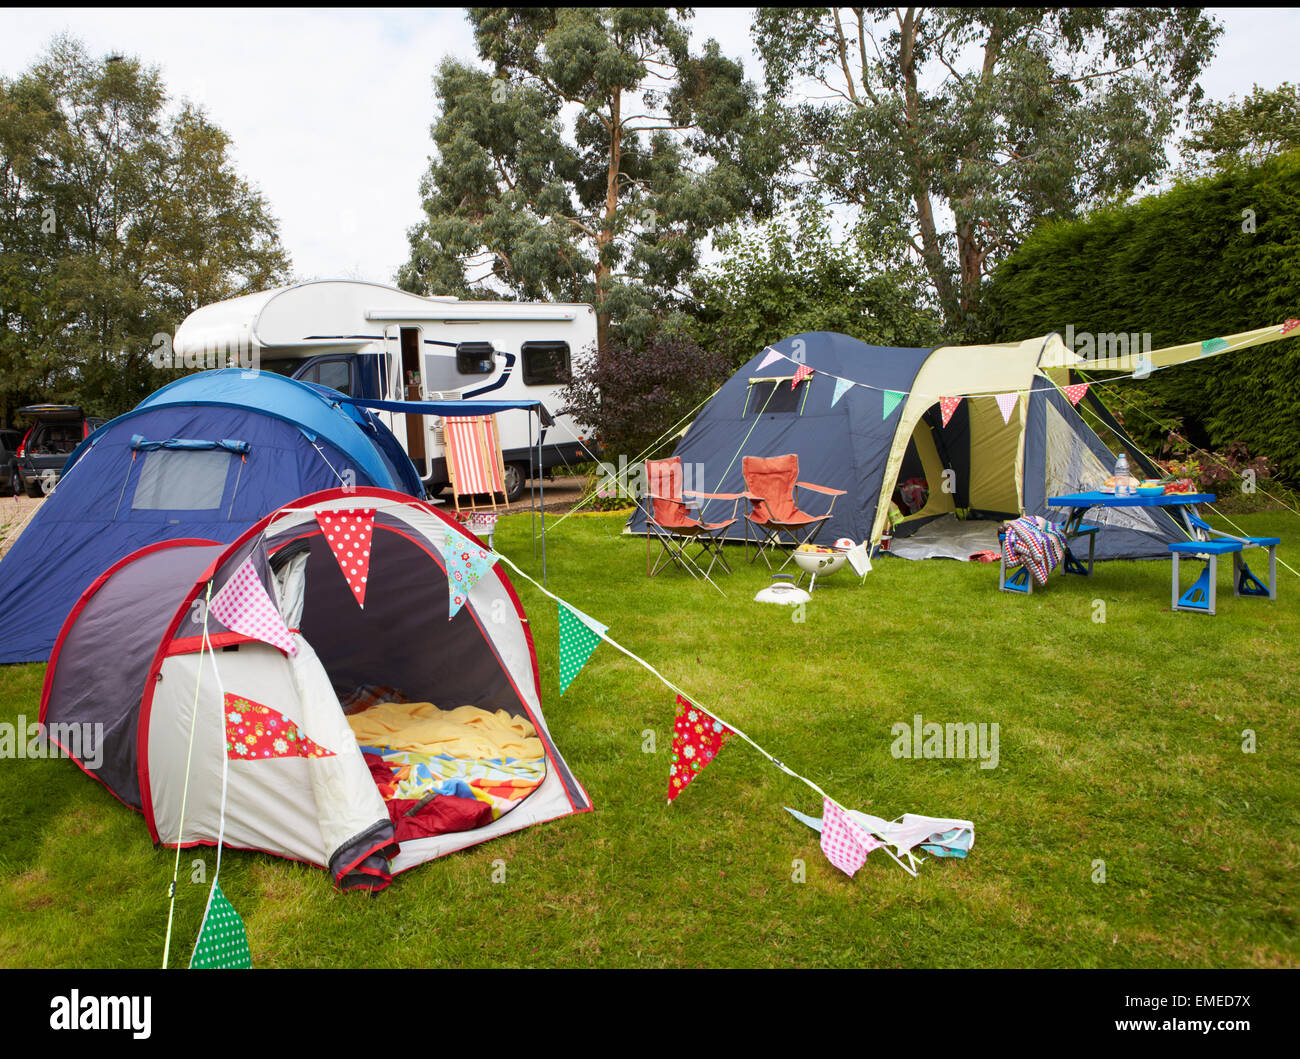 C&site With Pitched Tents And C&ervan & Campsite With Pitched Tents And Campervan Stock Photo Royalty ...